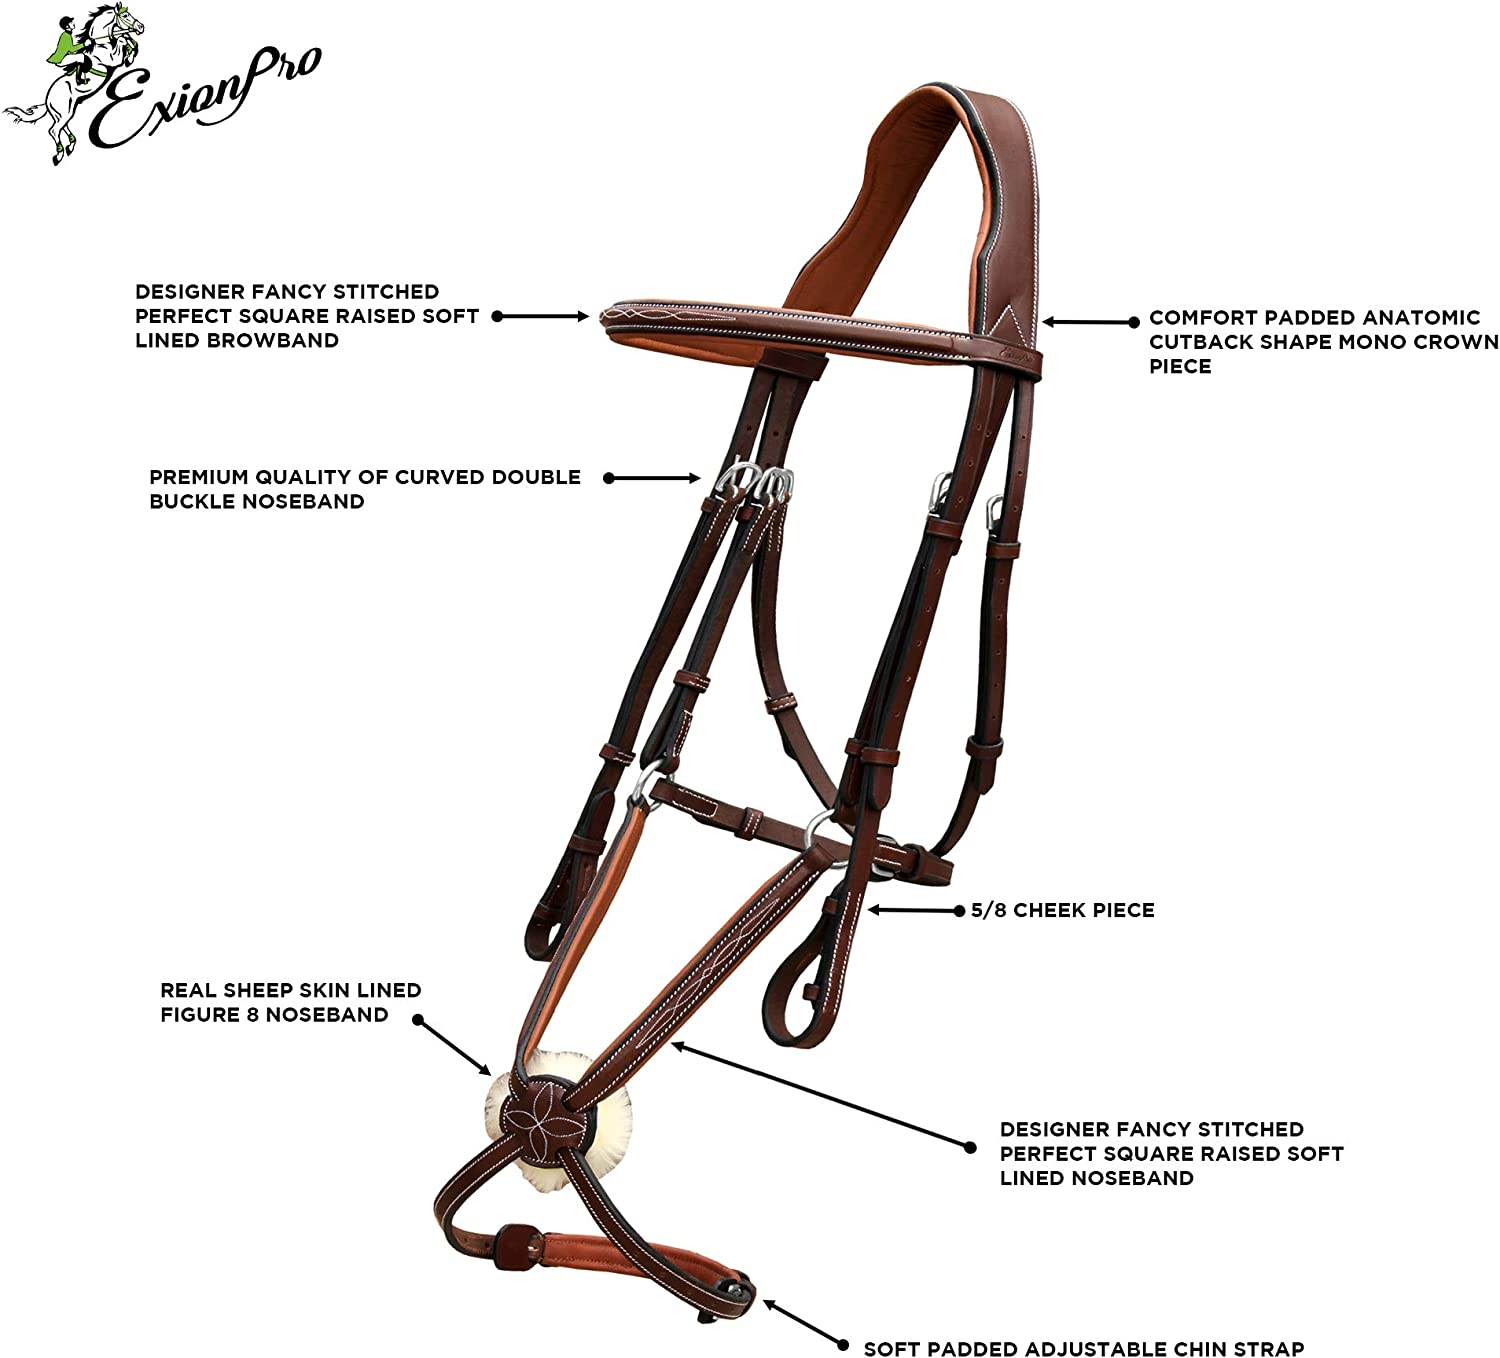 ExionPro Designer Fancy Stitched Square Raised Figure 8 Noseband Mono Crown piece Soft Lined English Bridle /& Rubber Rein For Horses English Bridle Figure Eight bridles for horse Figure 8 Bridle